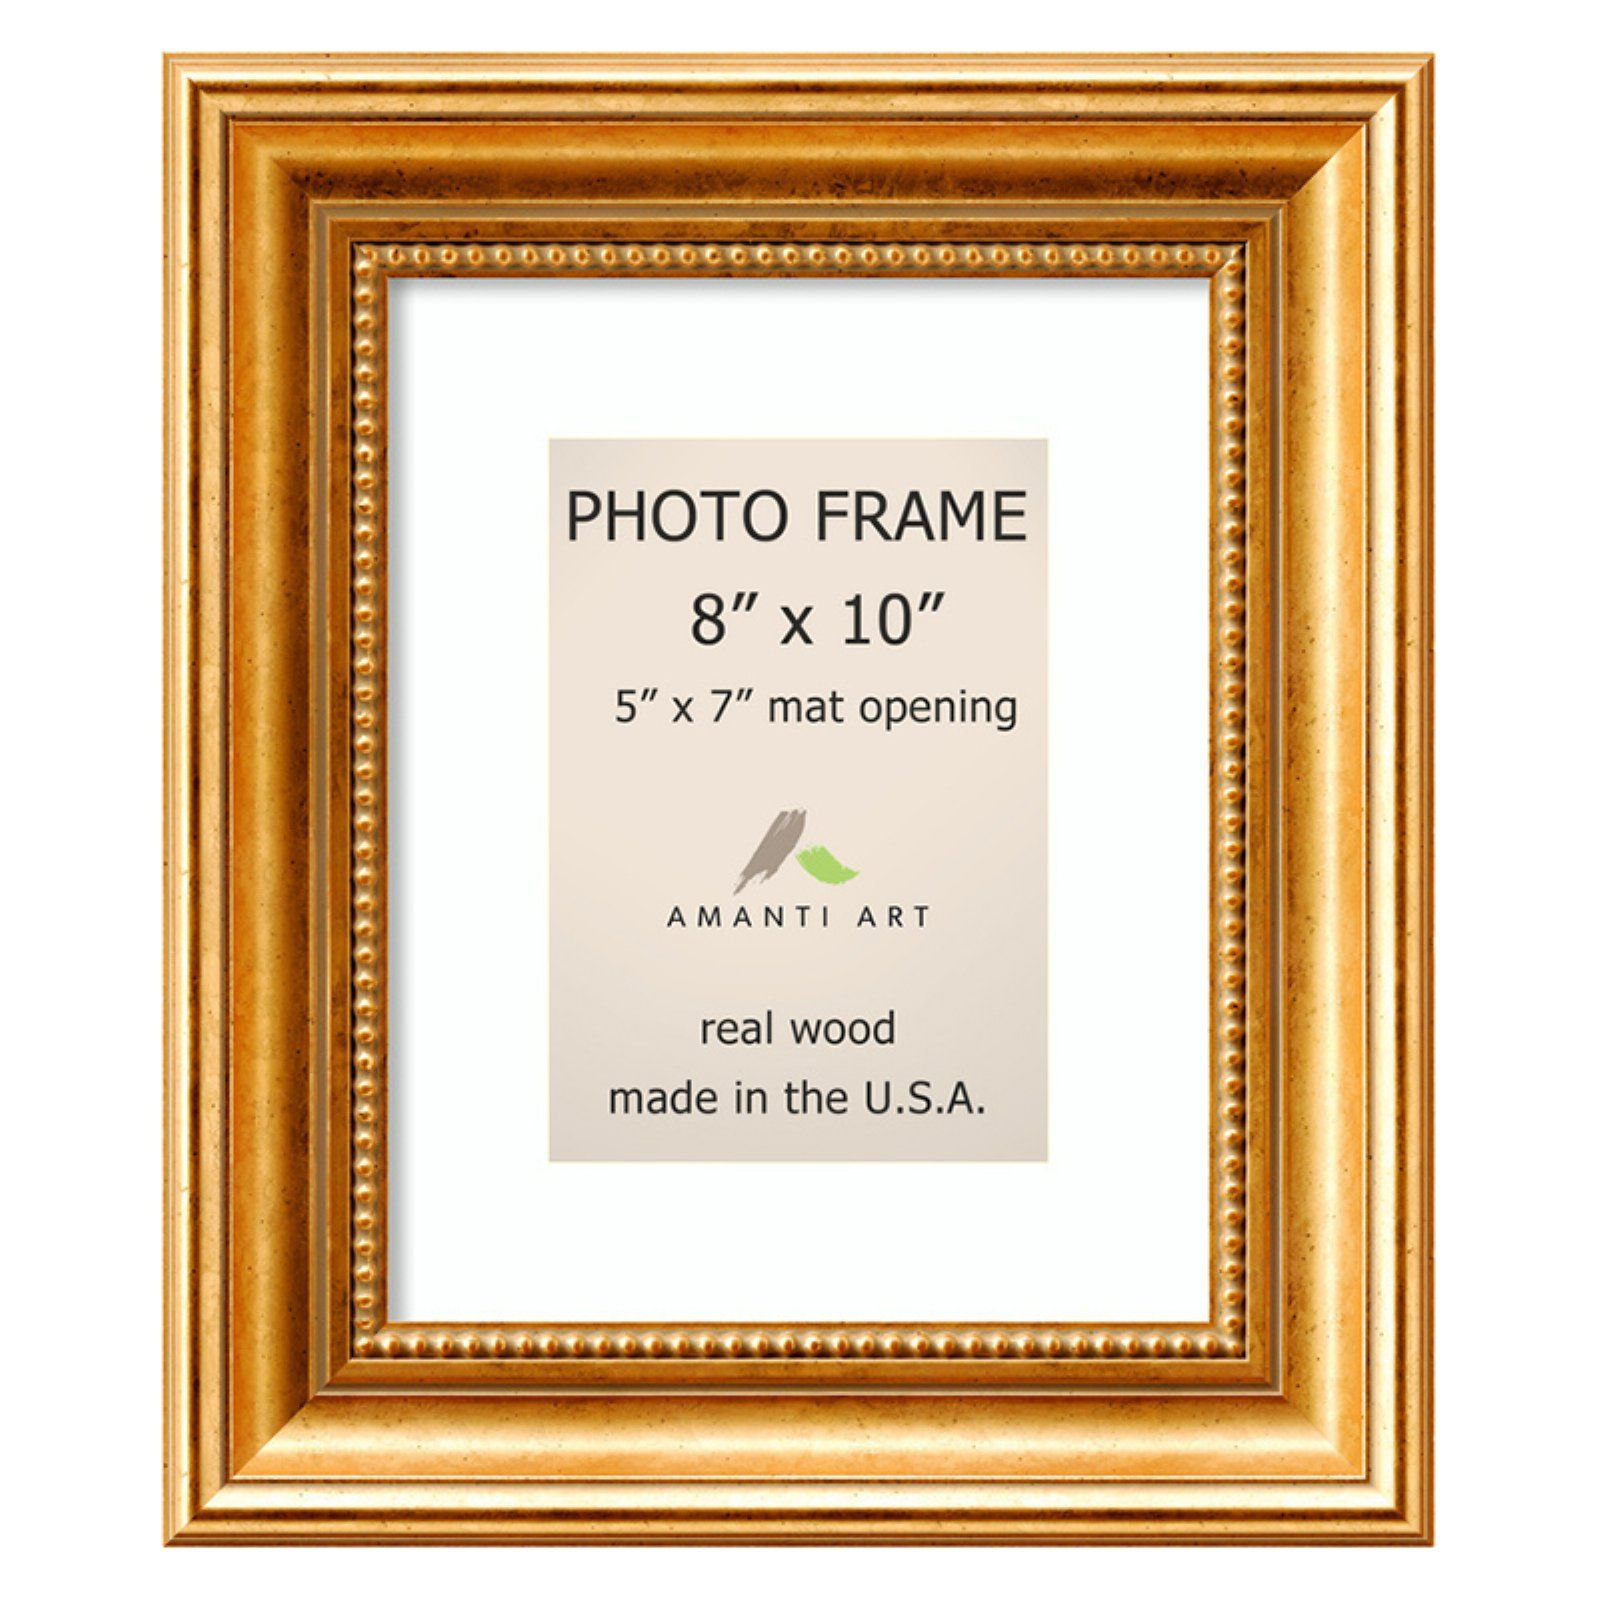 J And S Framing Townhouse Gold Photo Frame Gold Picture Frames Gold Photo Frames Photo Frame